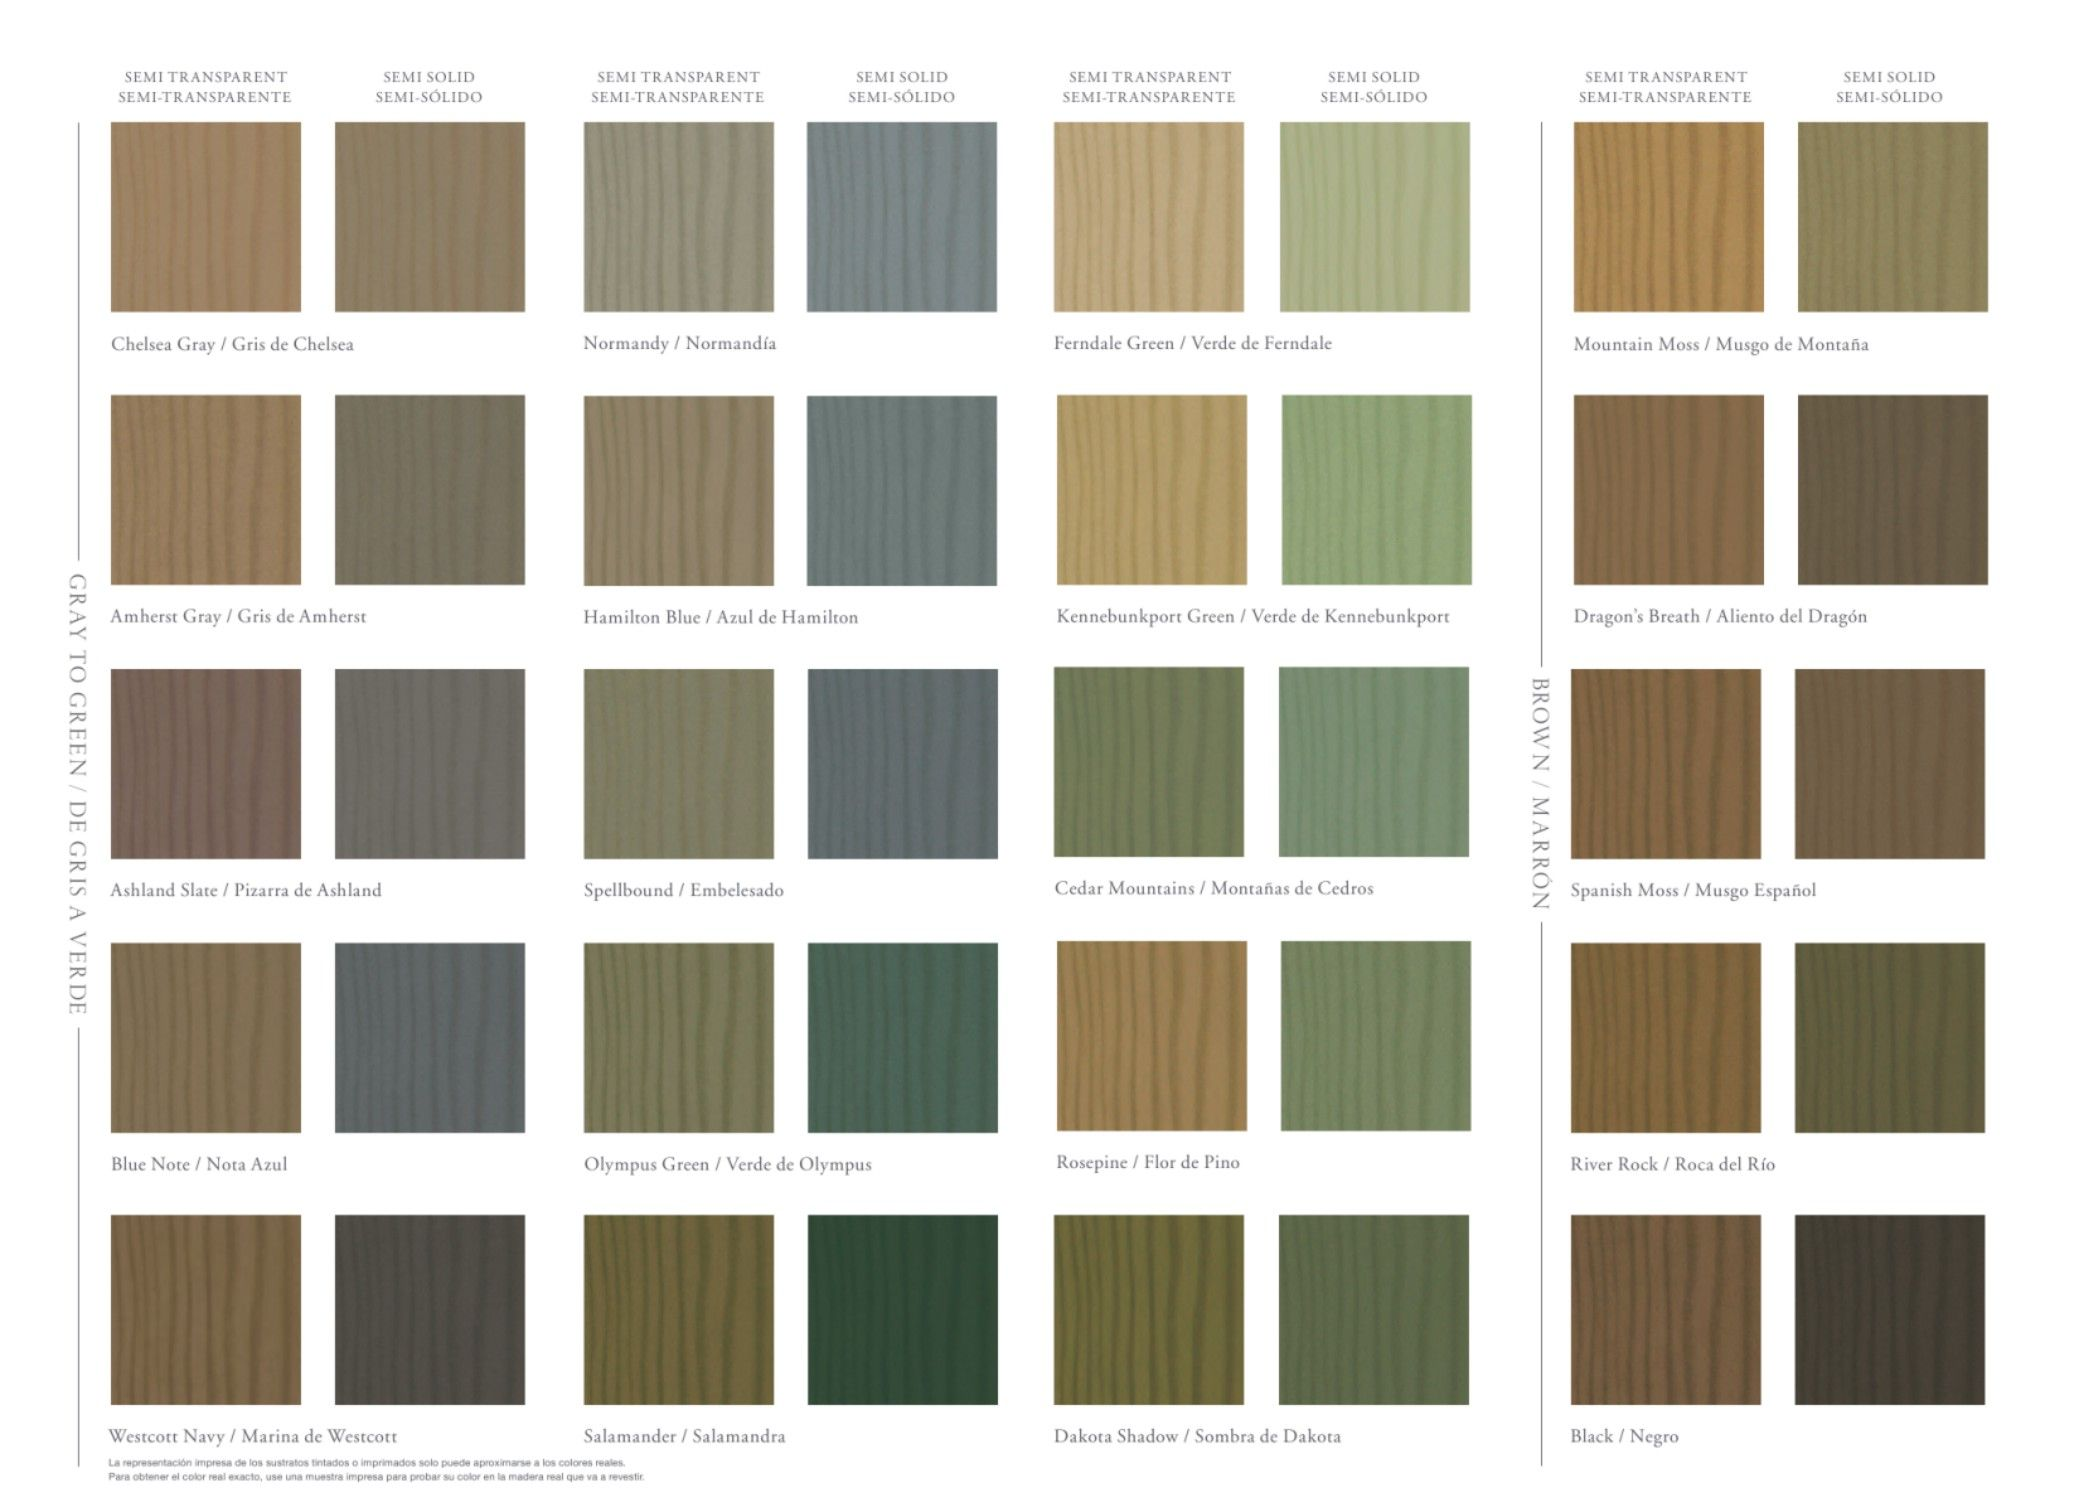 Benjamin Moore Semi Solid Deck Stain Colors